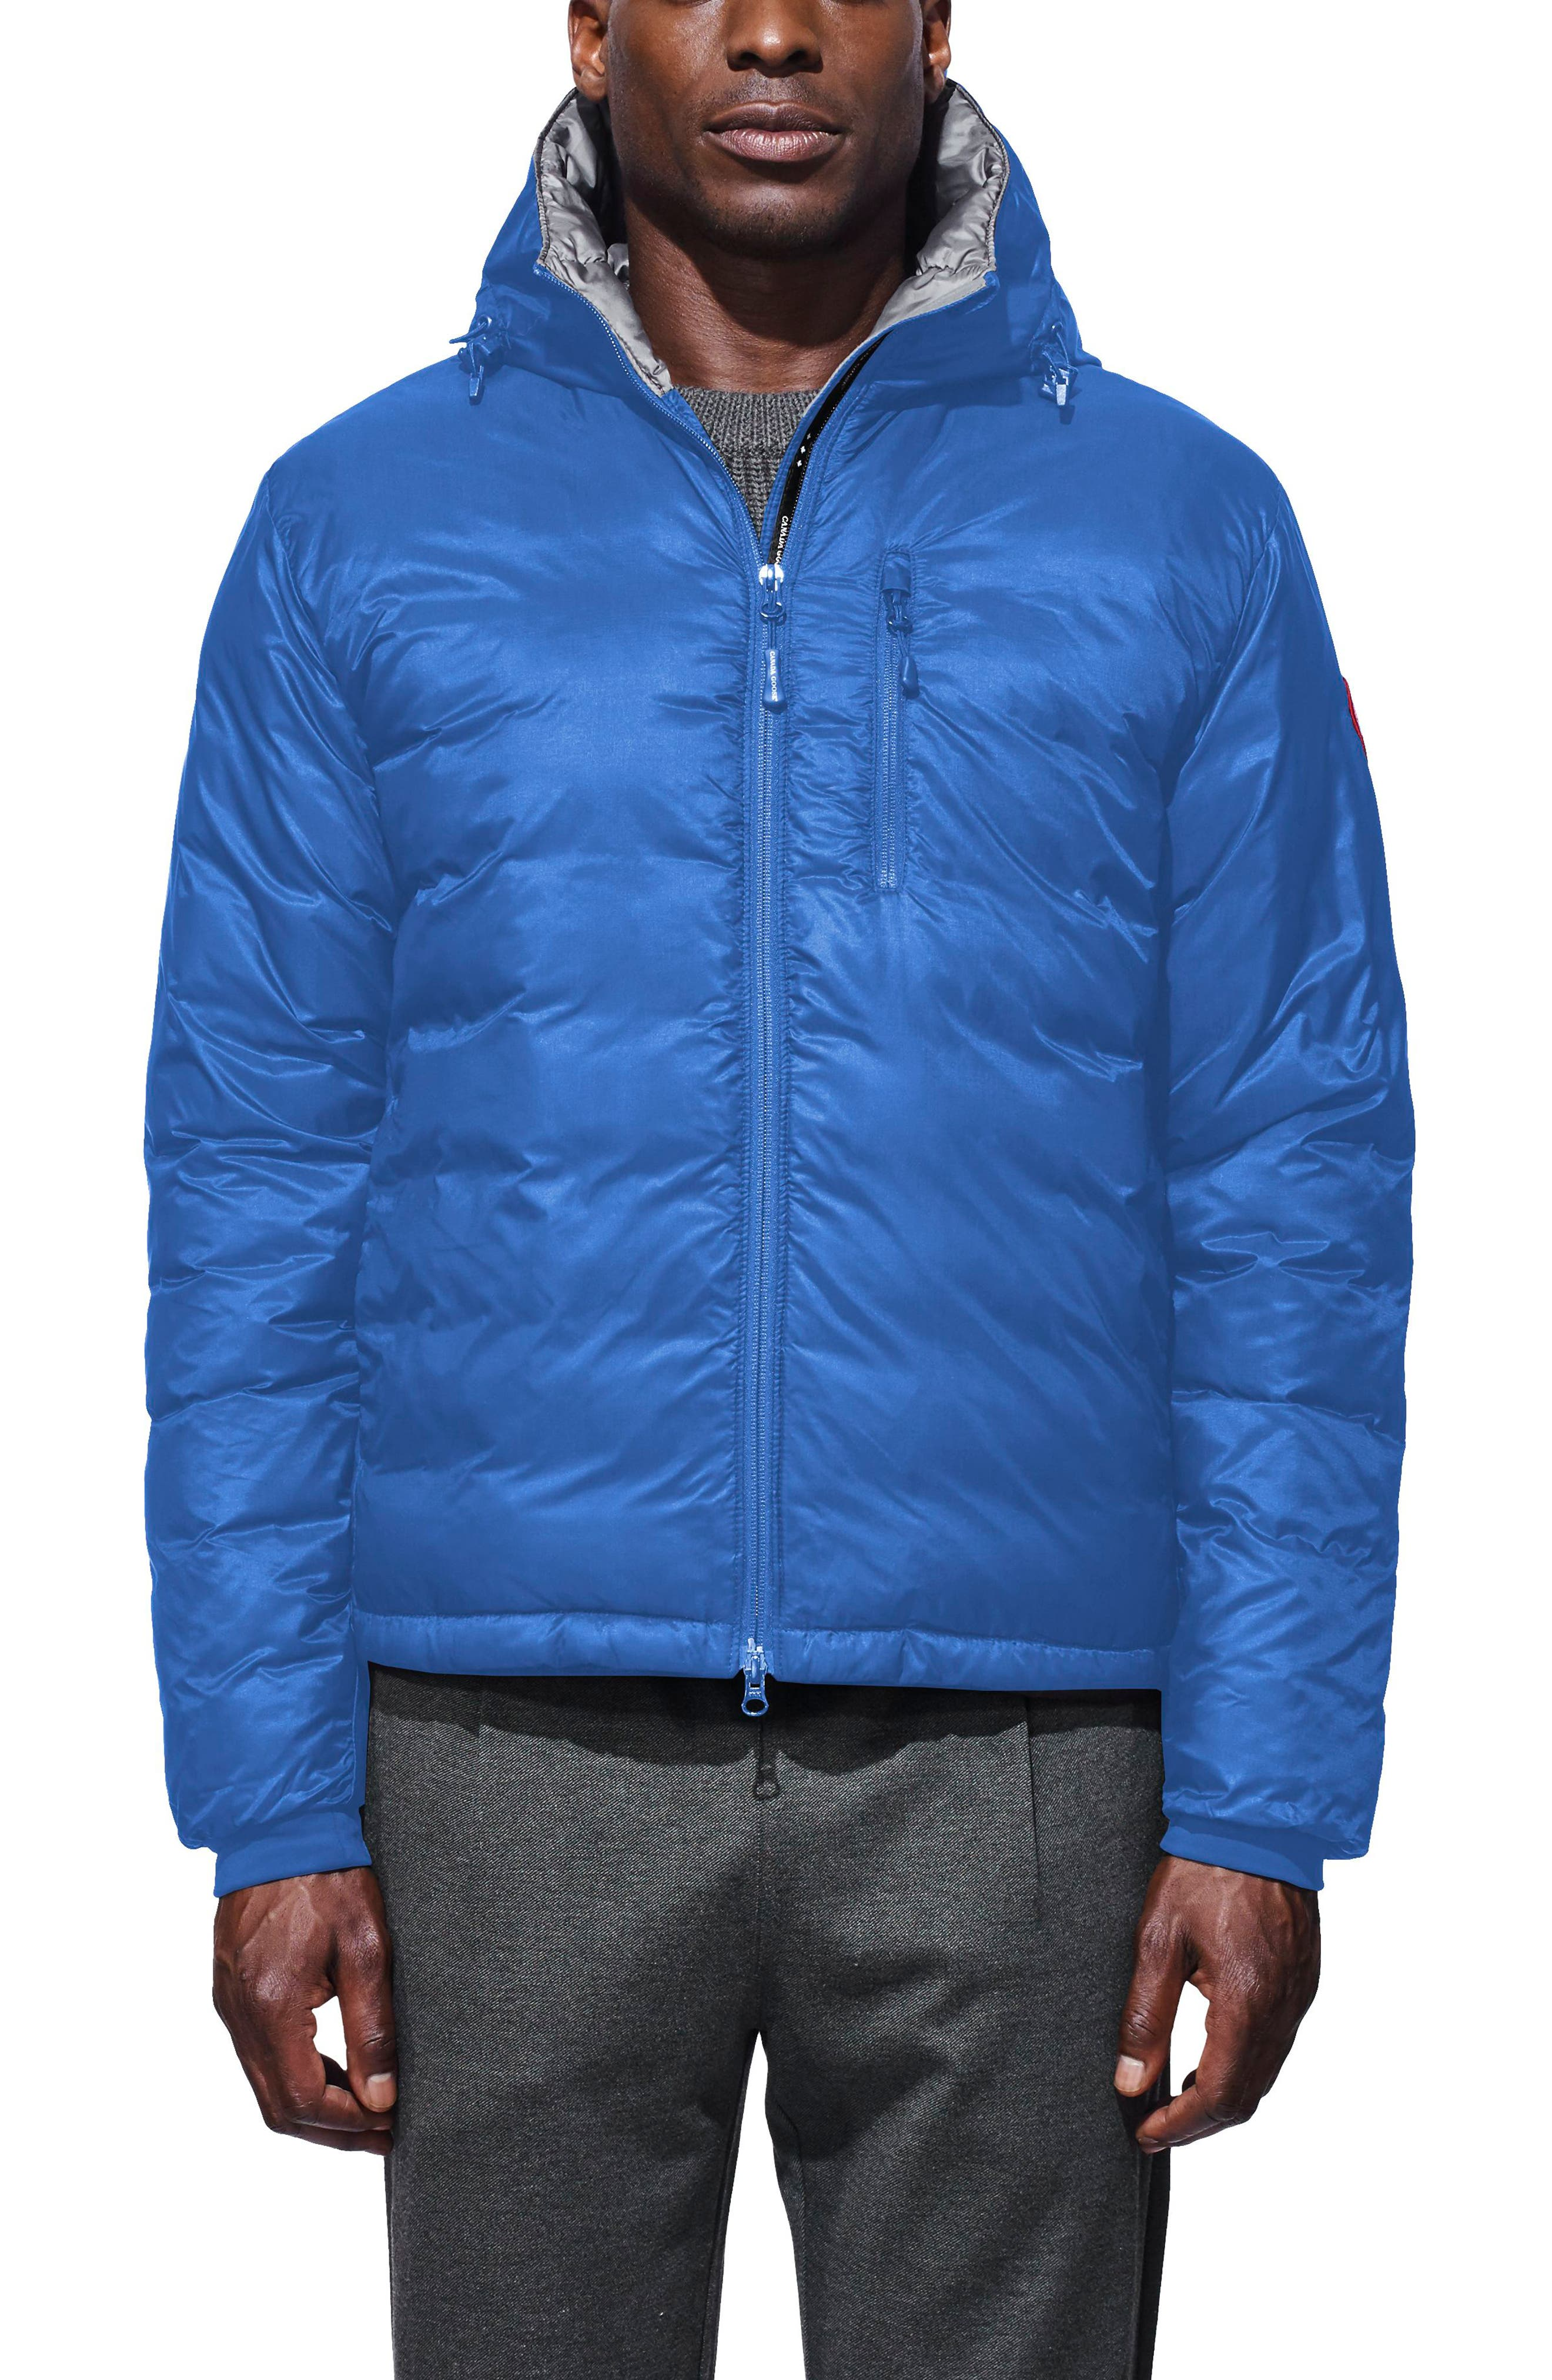 PBI Lodge Packable Down Hooded Jacket,                             Main thumbnail 1, color,                             Royal Blue